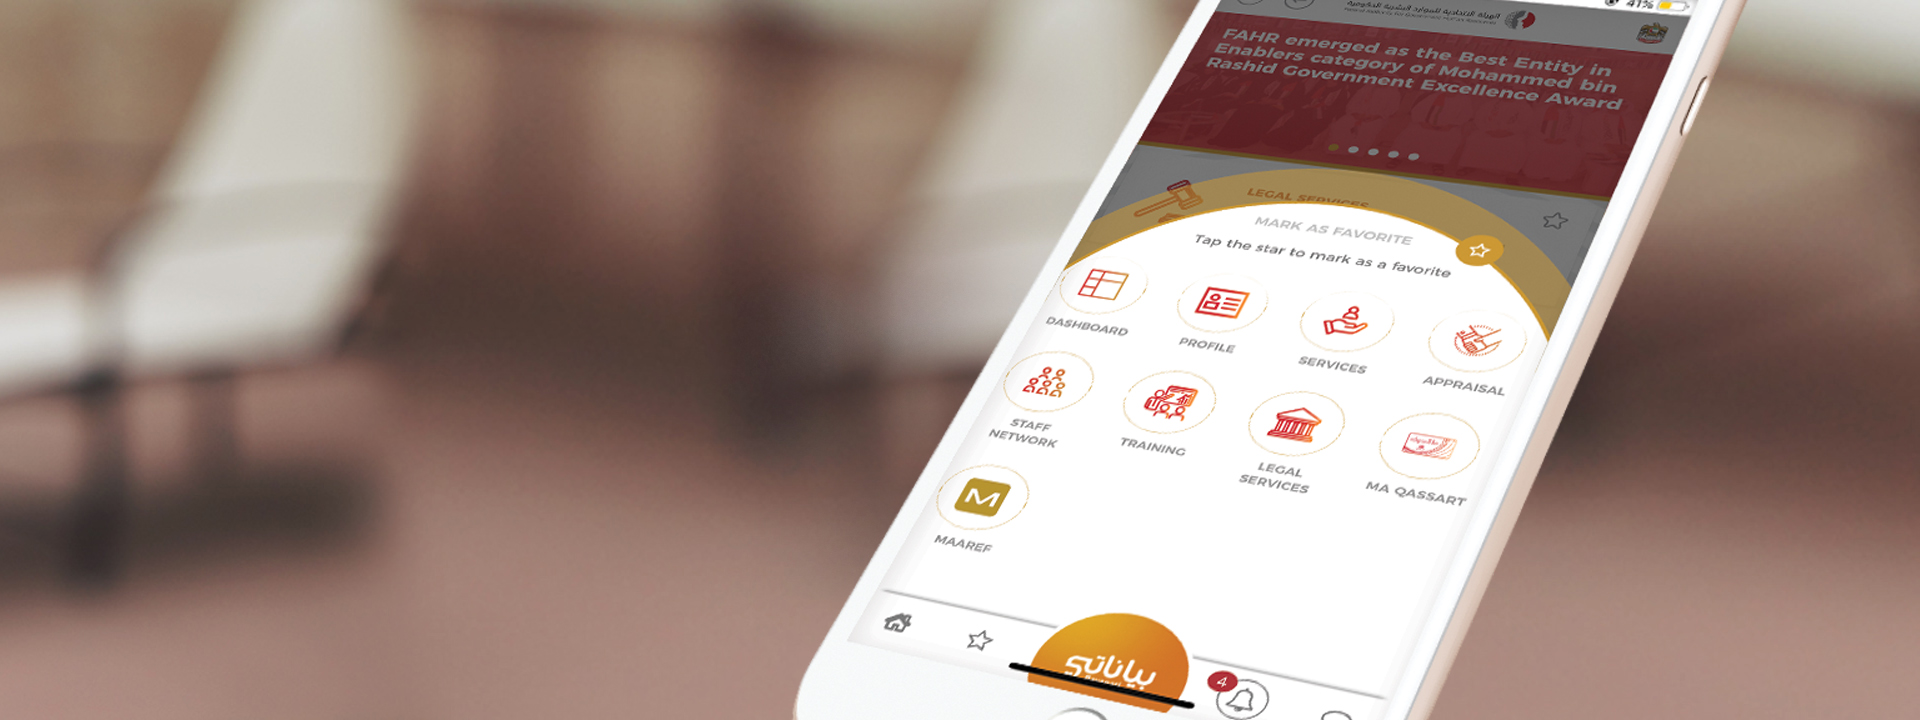 Launch of the updated version of the FAHR Smart App